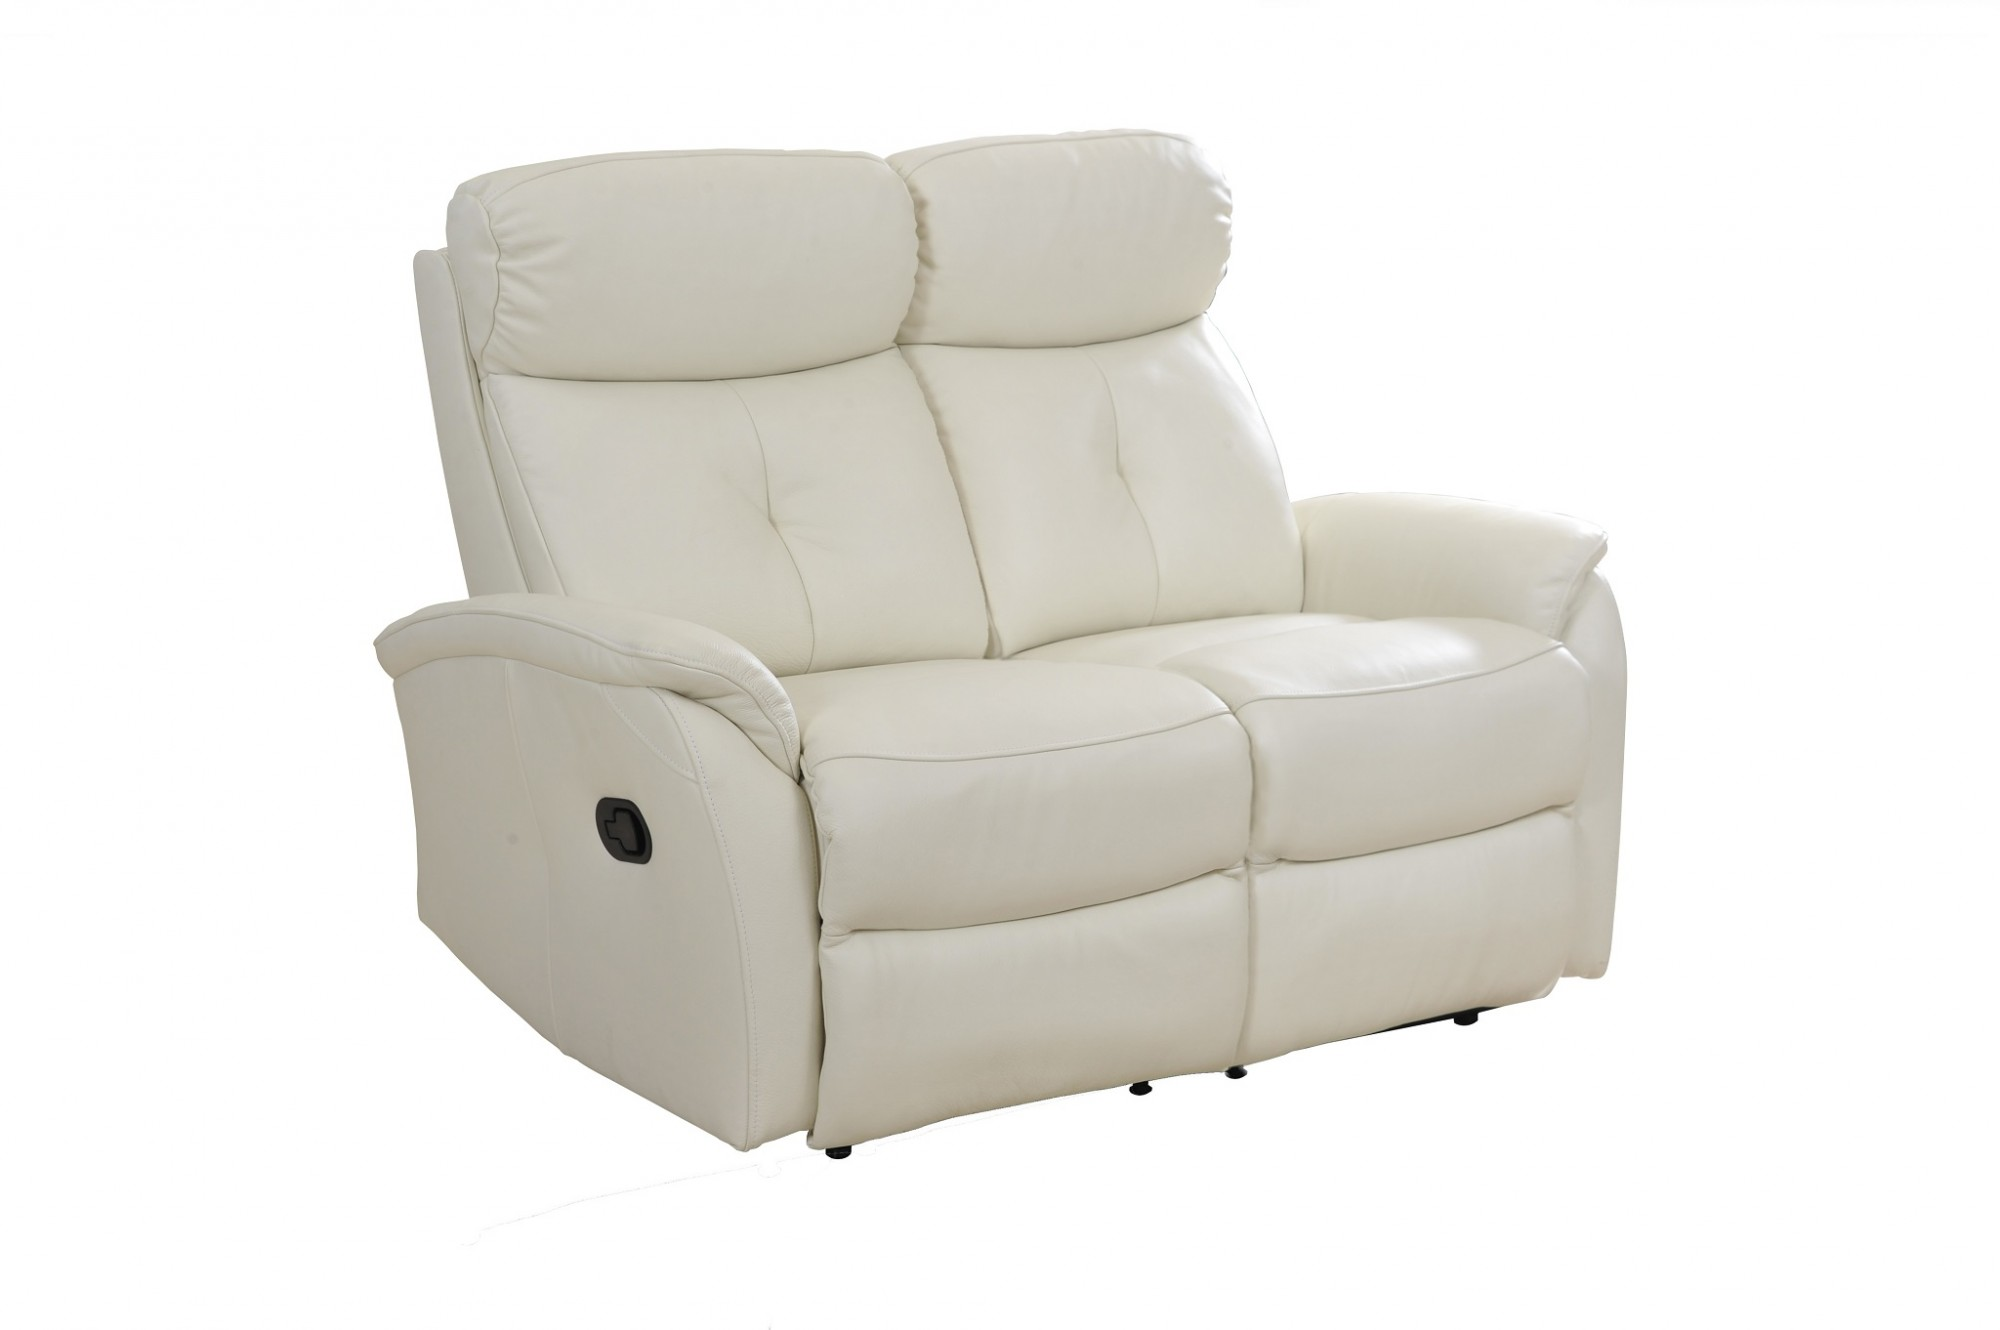 Two sear sofa bed and recliner - GlossyHome